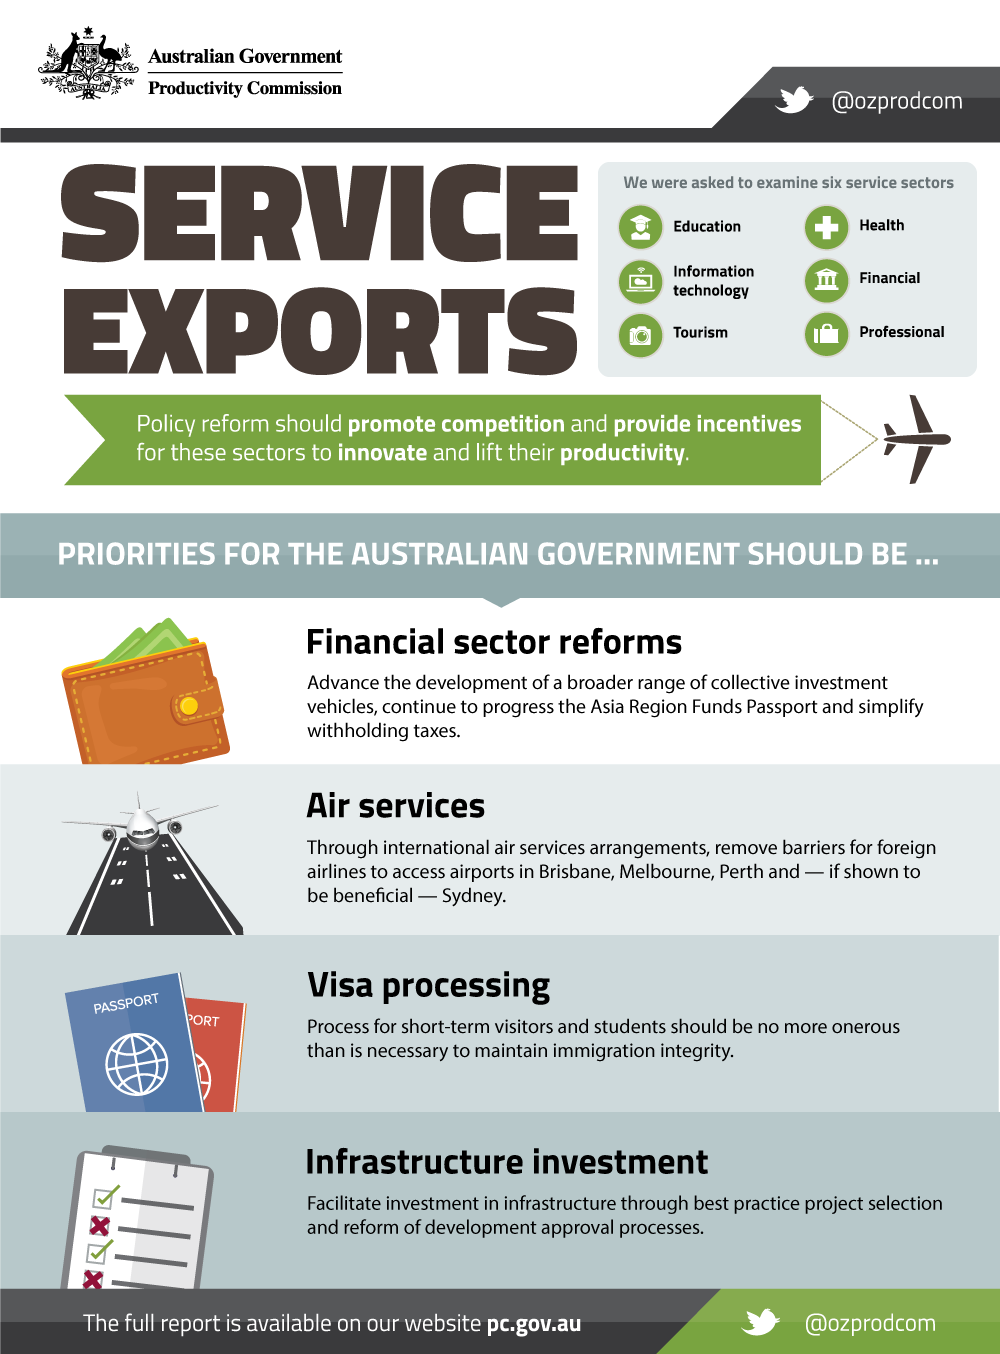 Service Exports infographic. Text version follows.